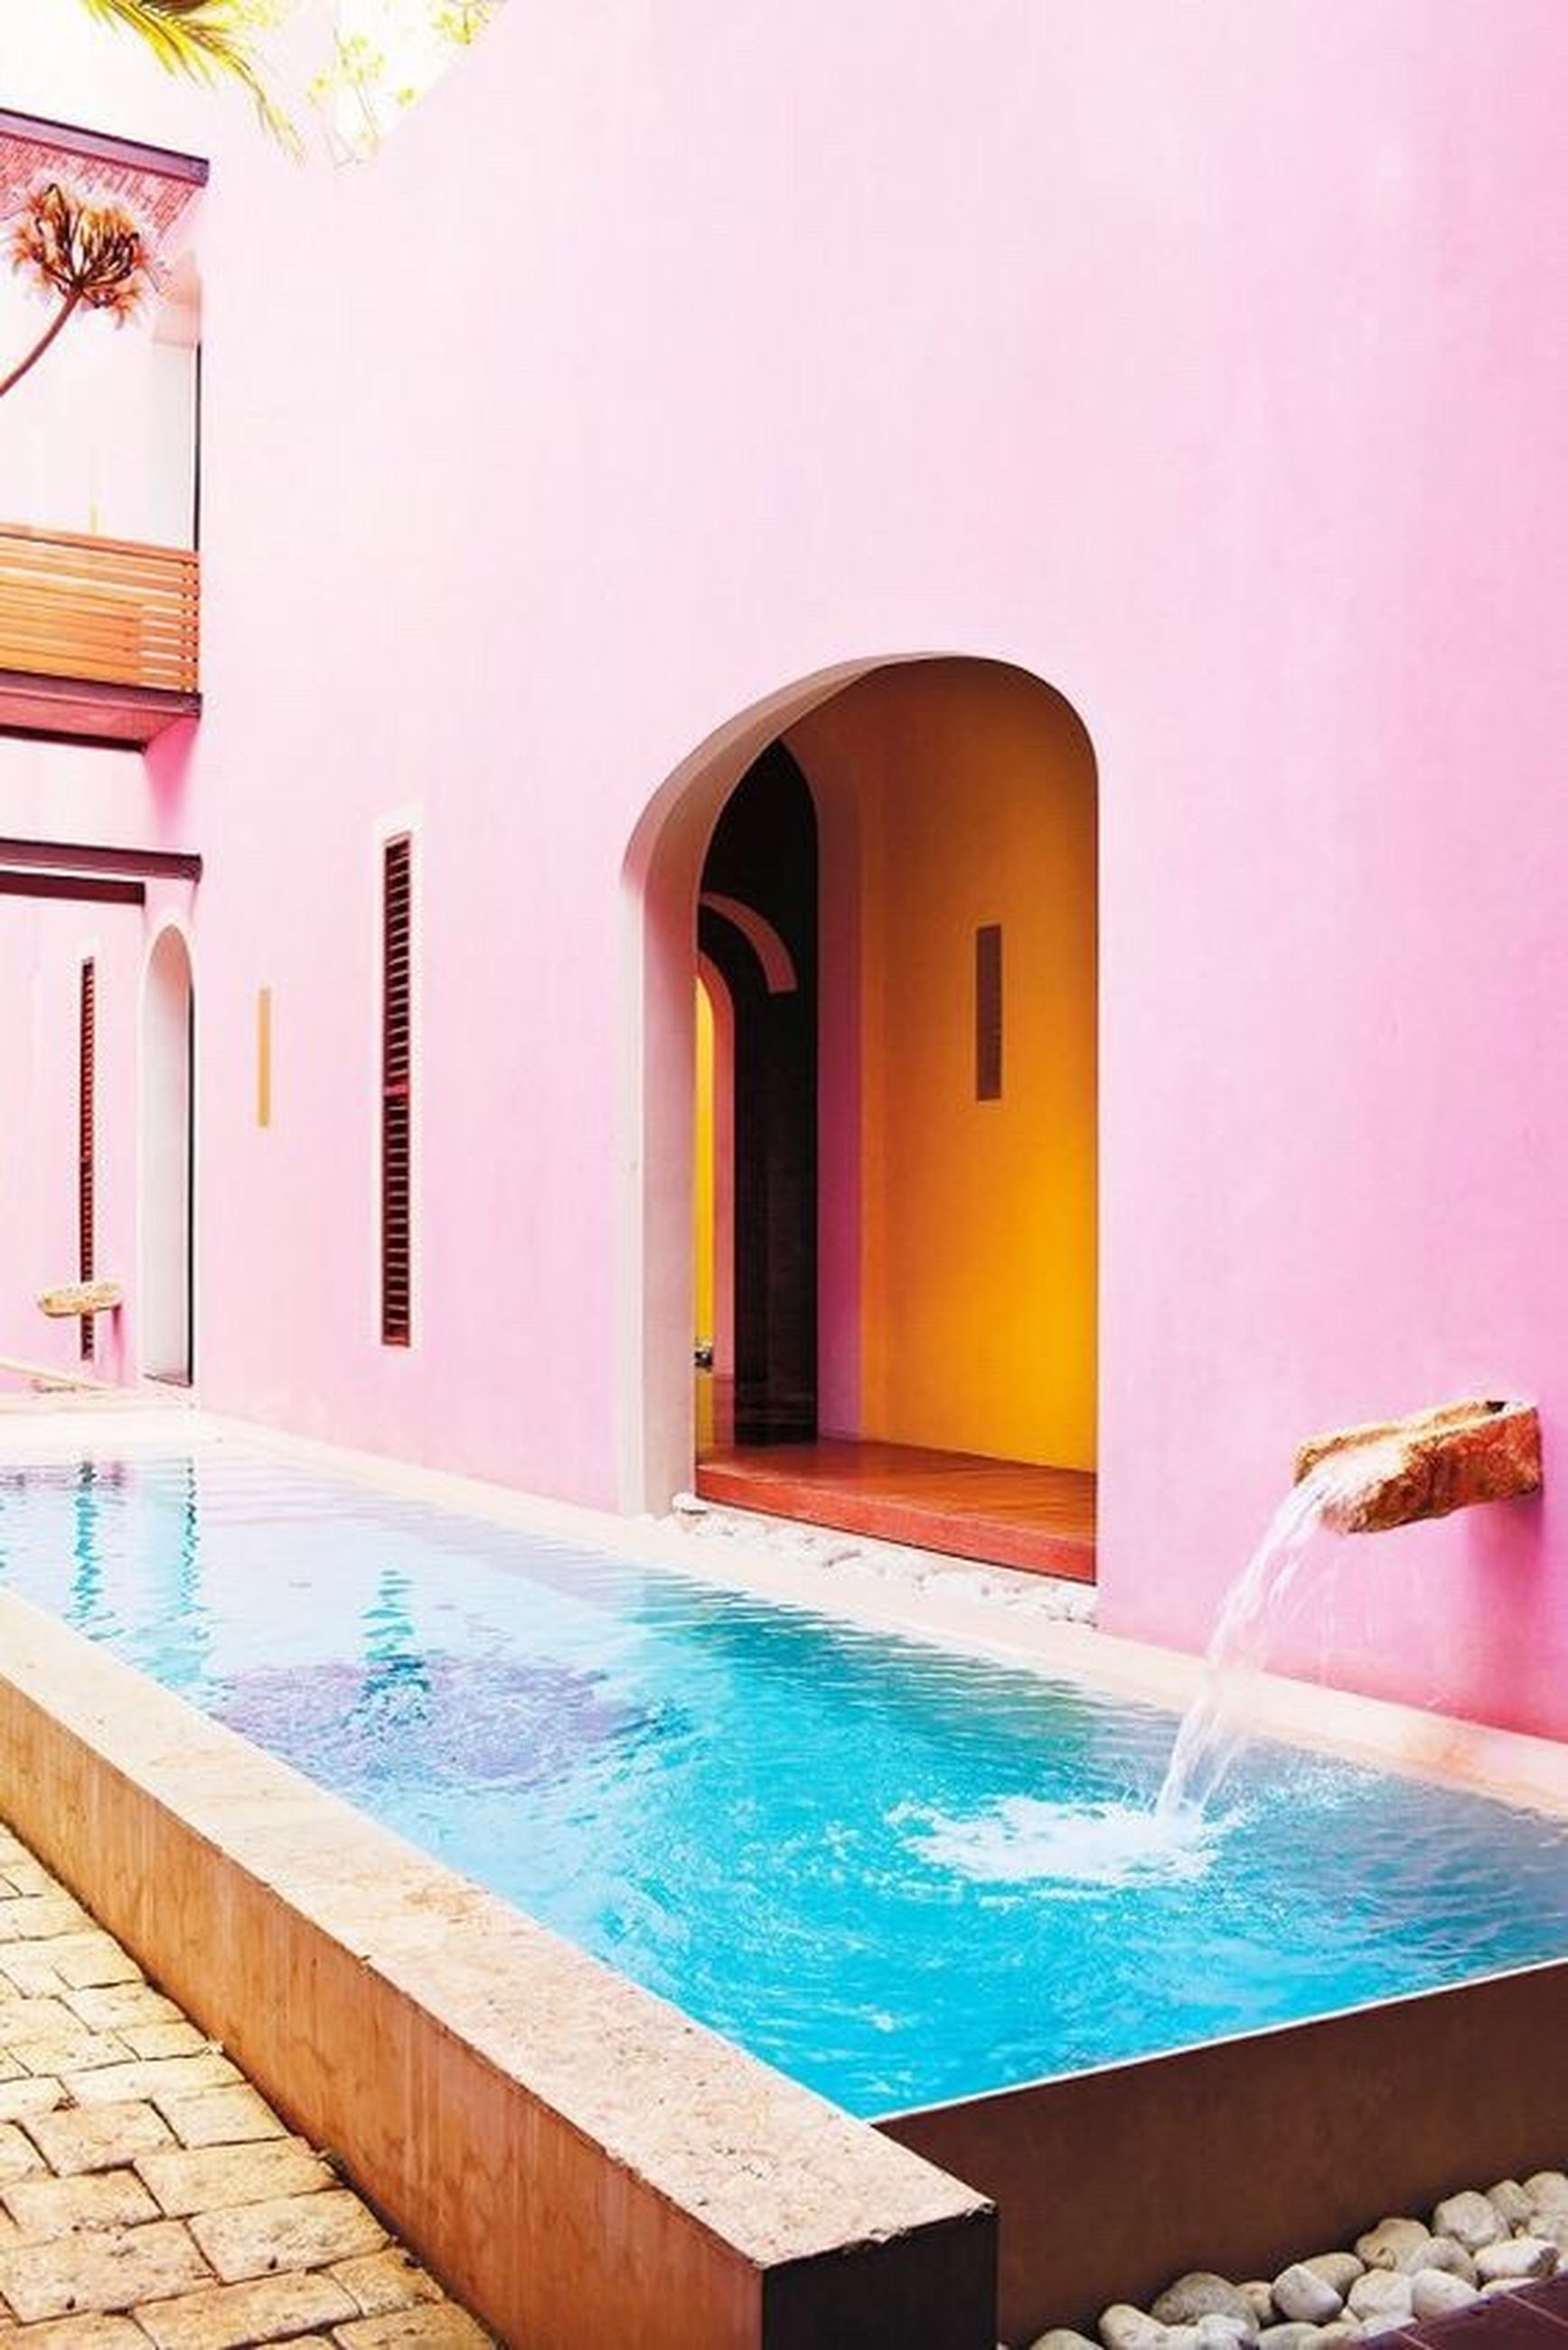 architecture, arch, swimming pool, travel, travel destinations, pink color, no people, built structure, luxury, cultures, water, outdoors, day